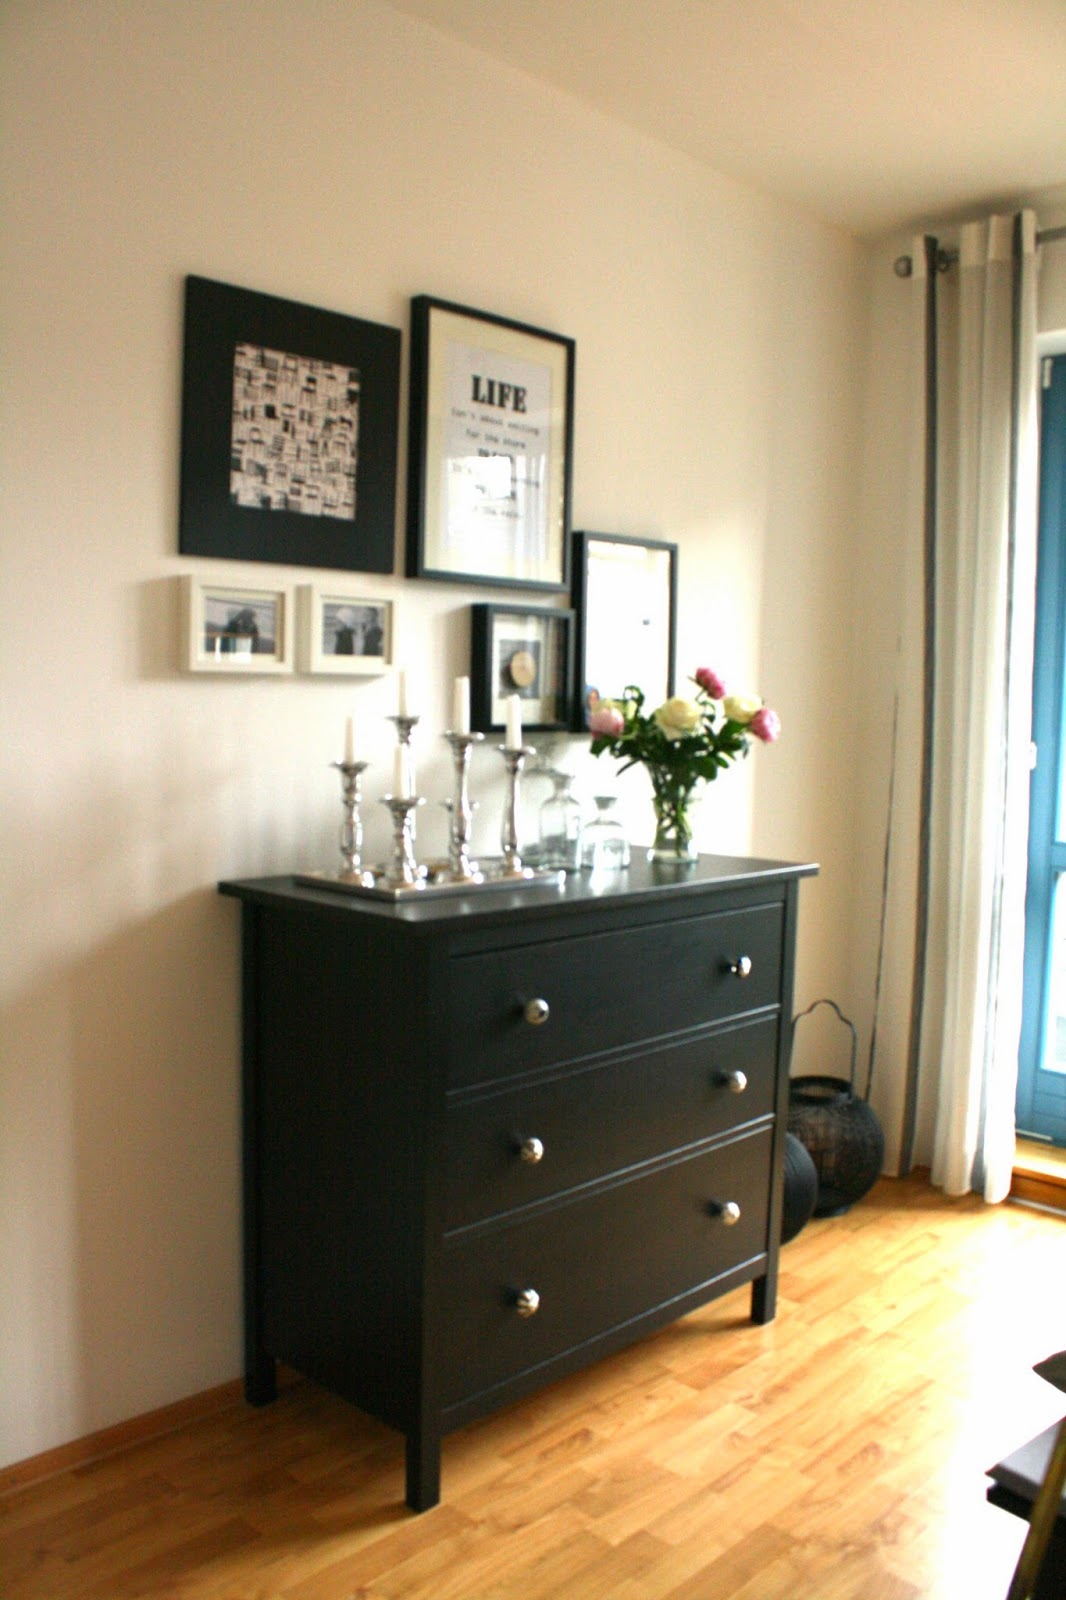 kommode deko stunning kommoden zeitnah abbild kommode weiss wunderbare wei hochglanz schubladen. Black Bedroom Furniture Sets. Home Design Ideas